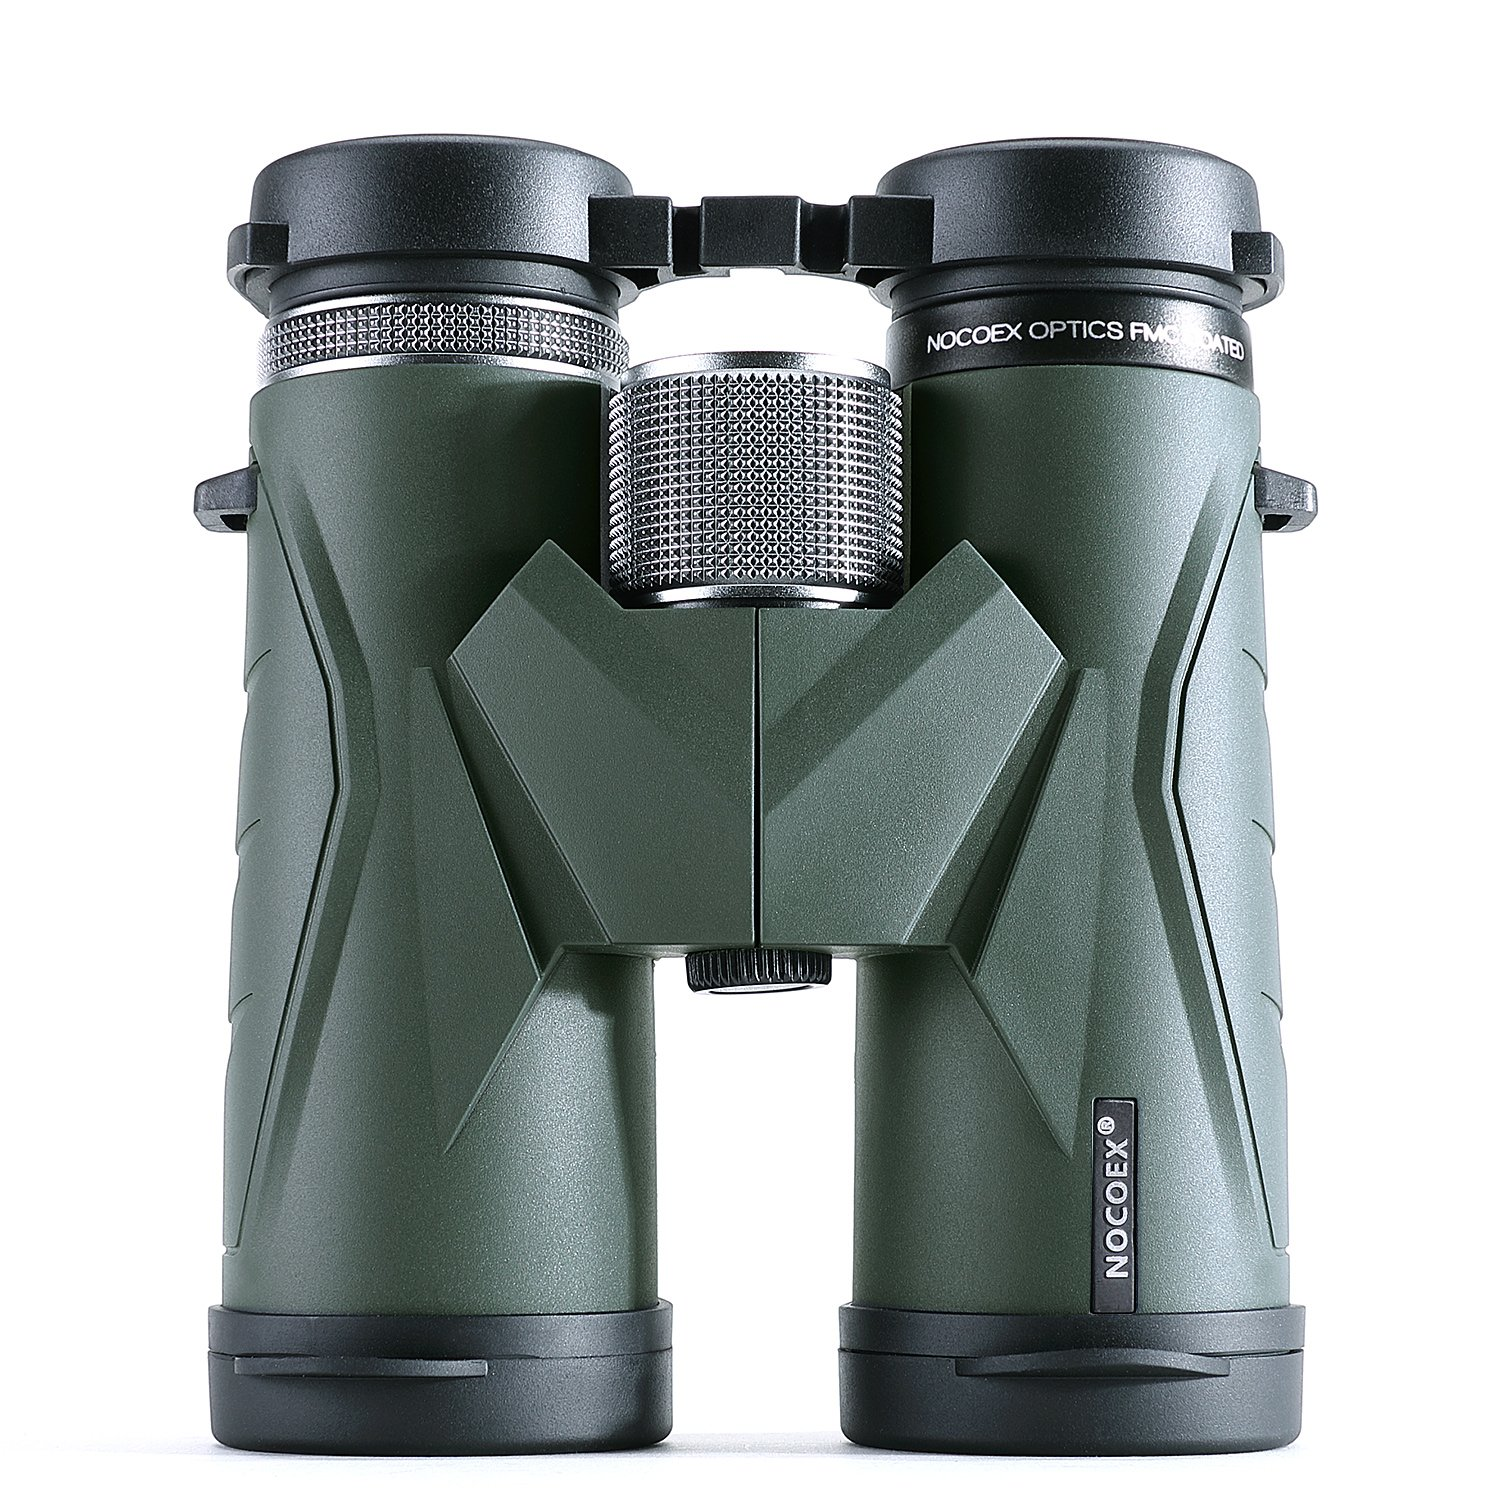 nocoex 10 x 42 HD屋根プリズムコンパクト双眼鏡with Carrying Bag andベルト、Suitable for Adults Bird Watching、ハンティング、Stargazing、アーミーグリーン B078H5B1CH